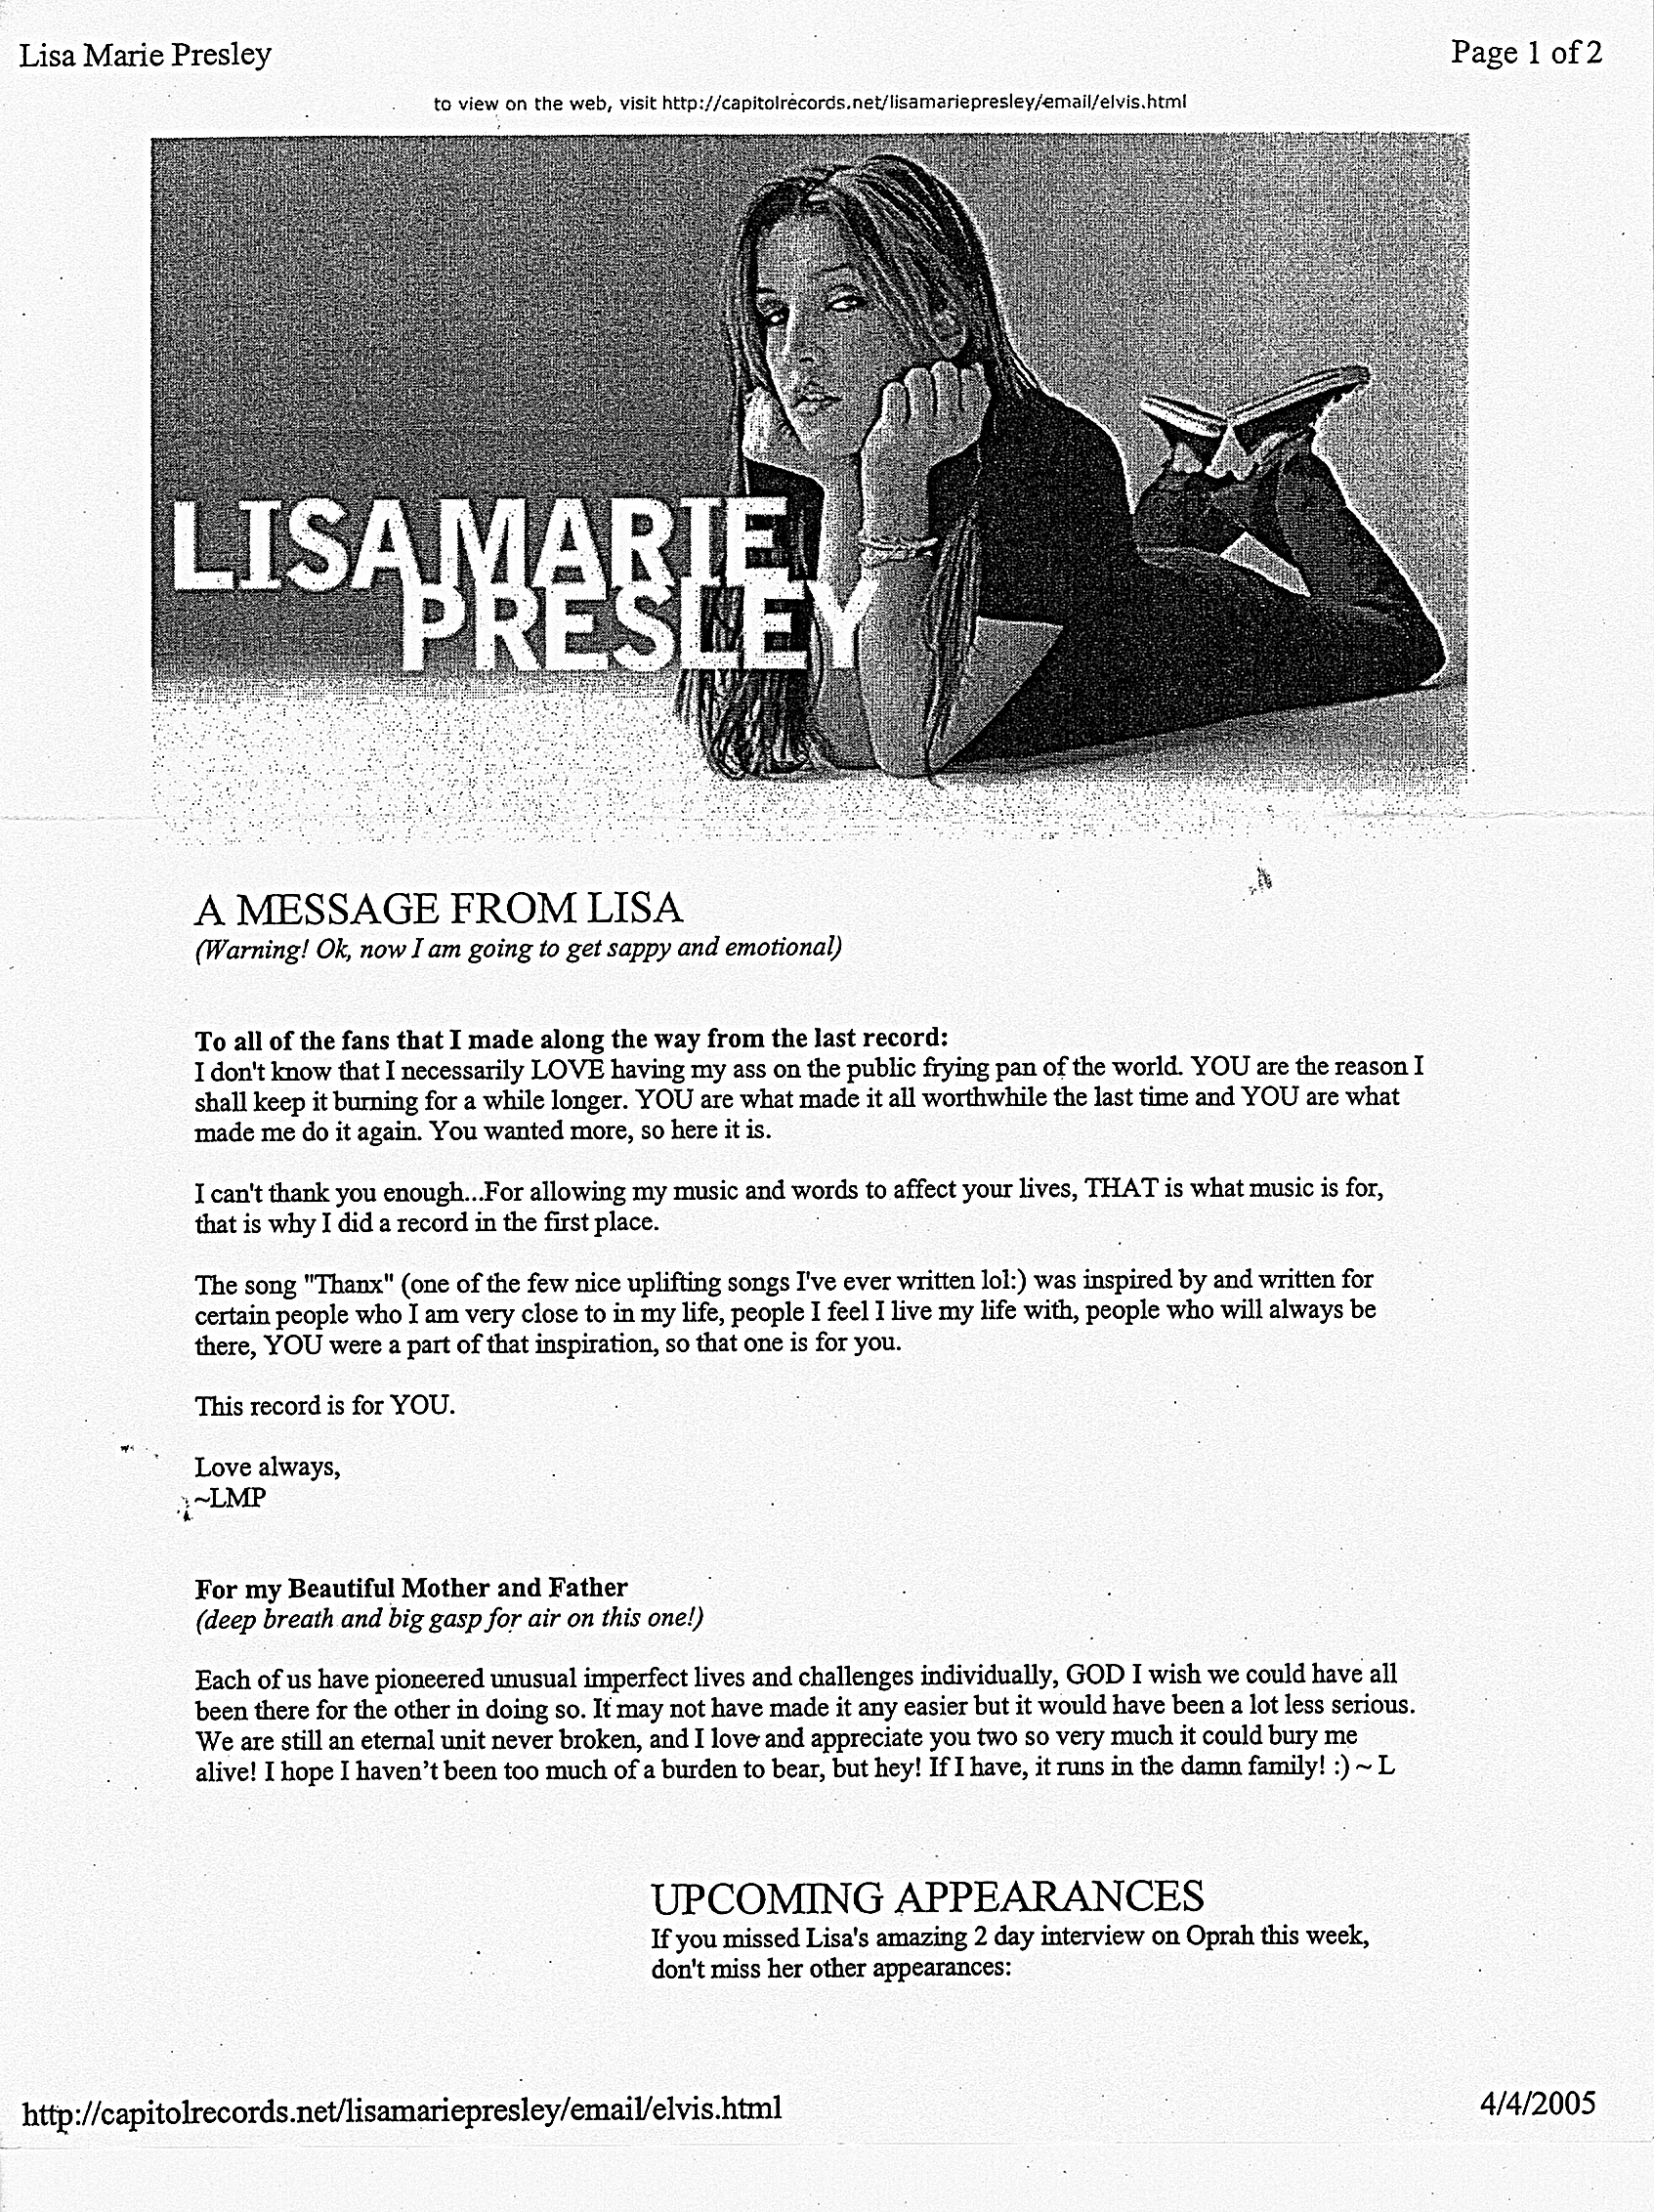 Message from Lisa Marie 2005